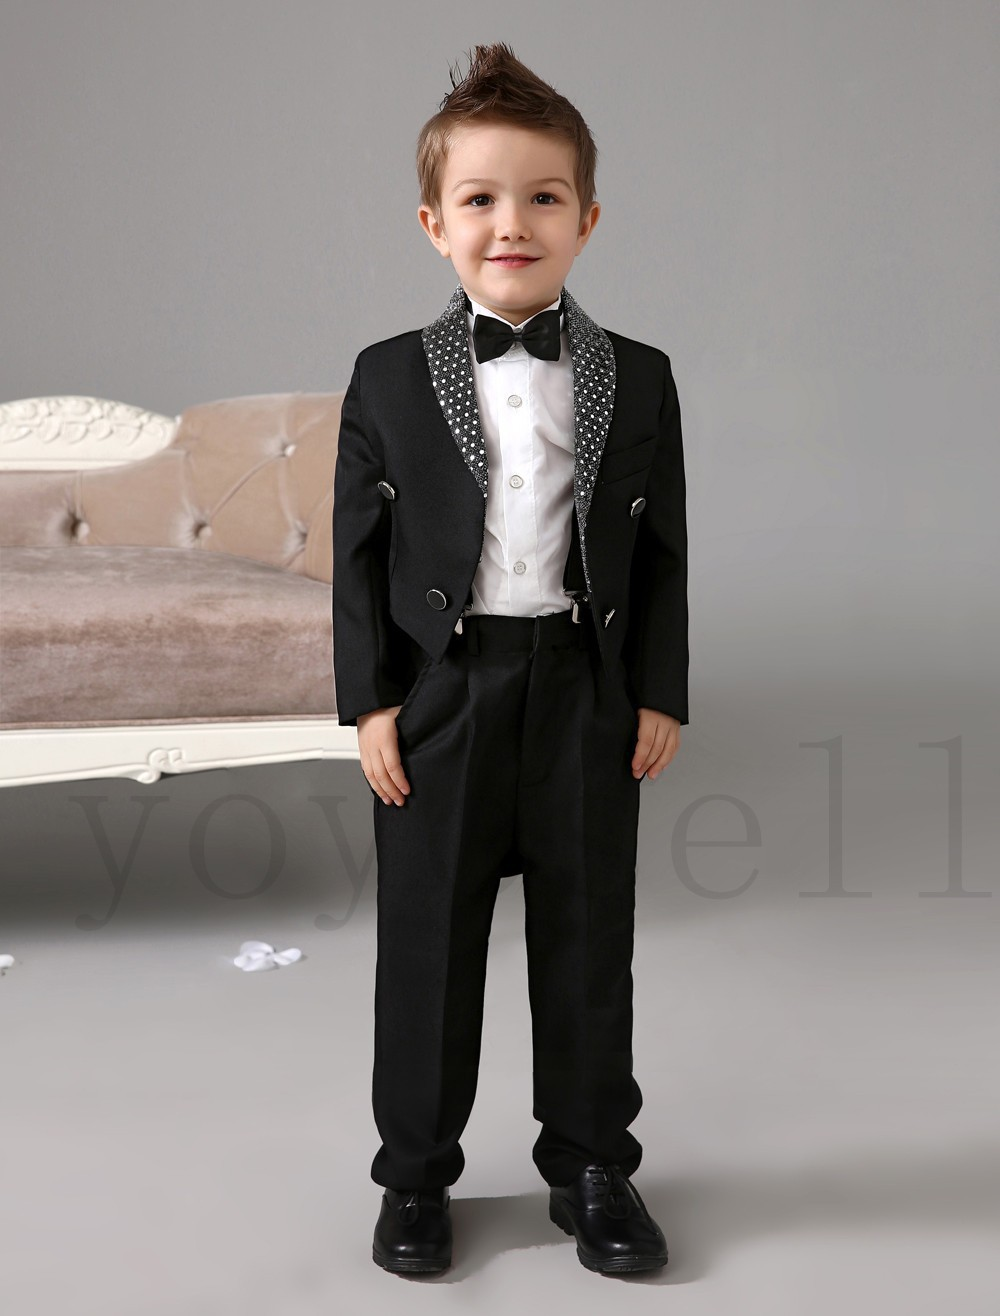 Boys Formal Ring Bearer Suits